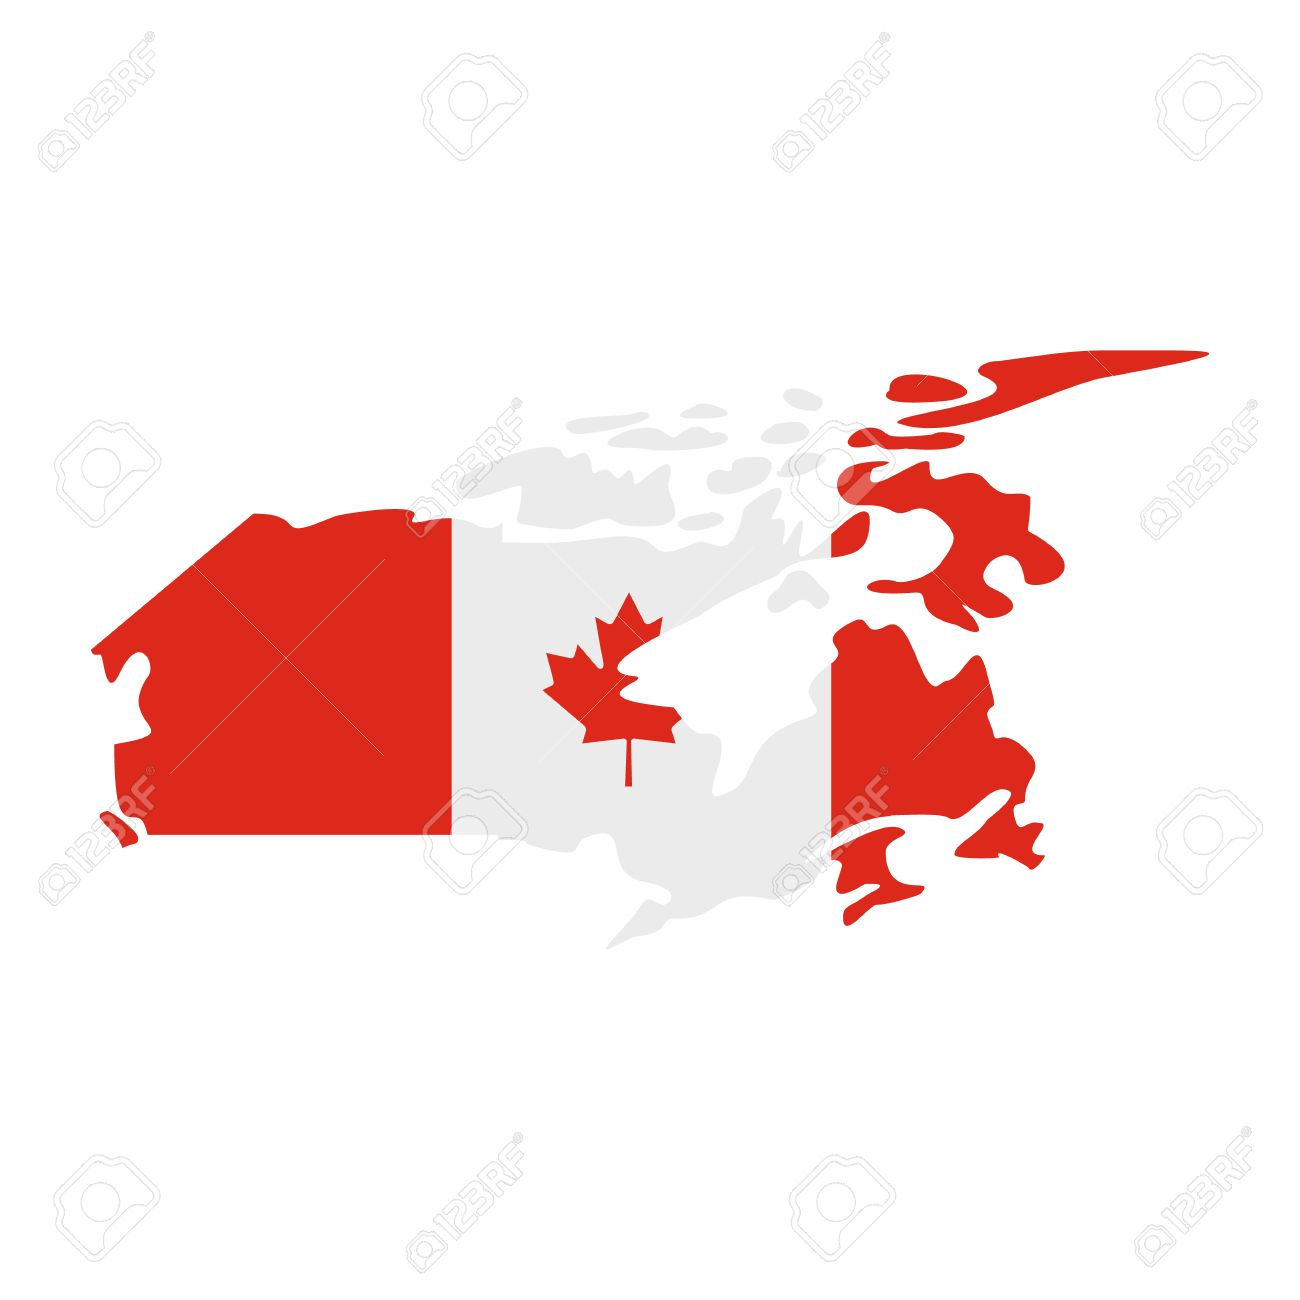 Canada Map Flag.Map Of Canada With The Image Of The National Flag Icon In Flat